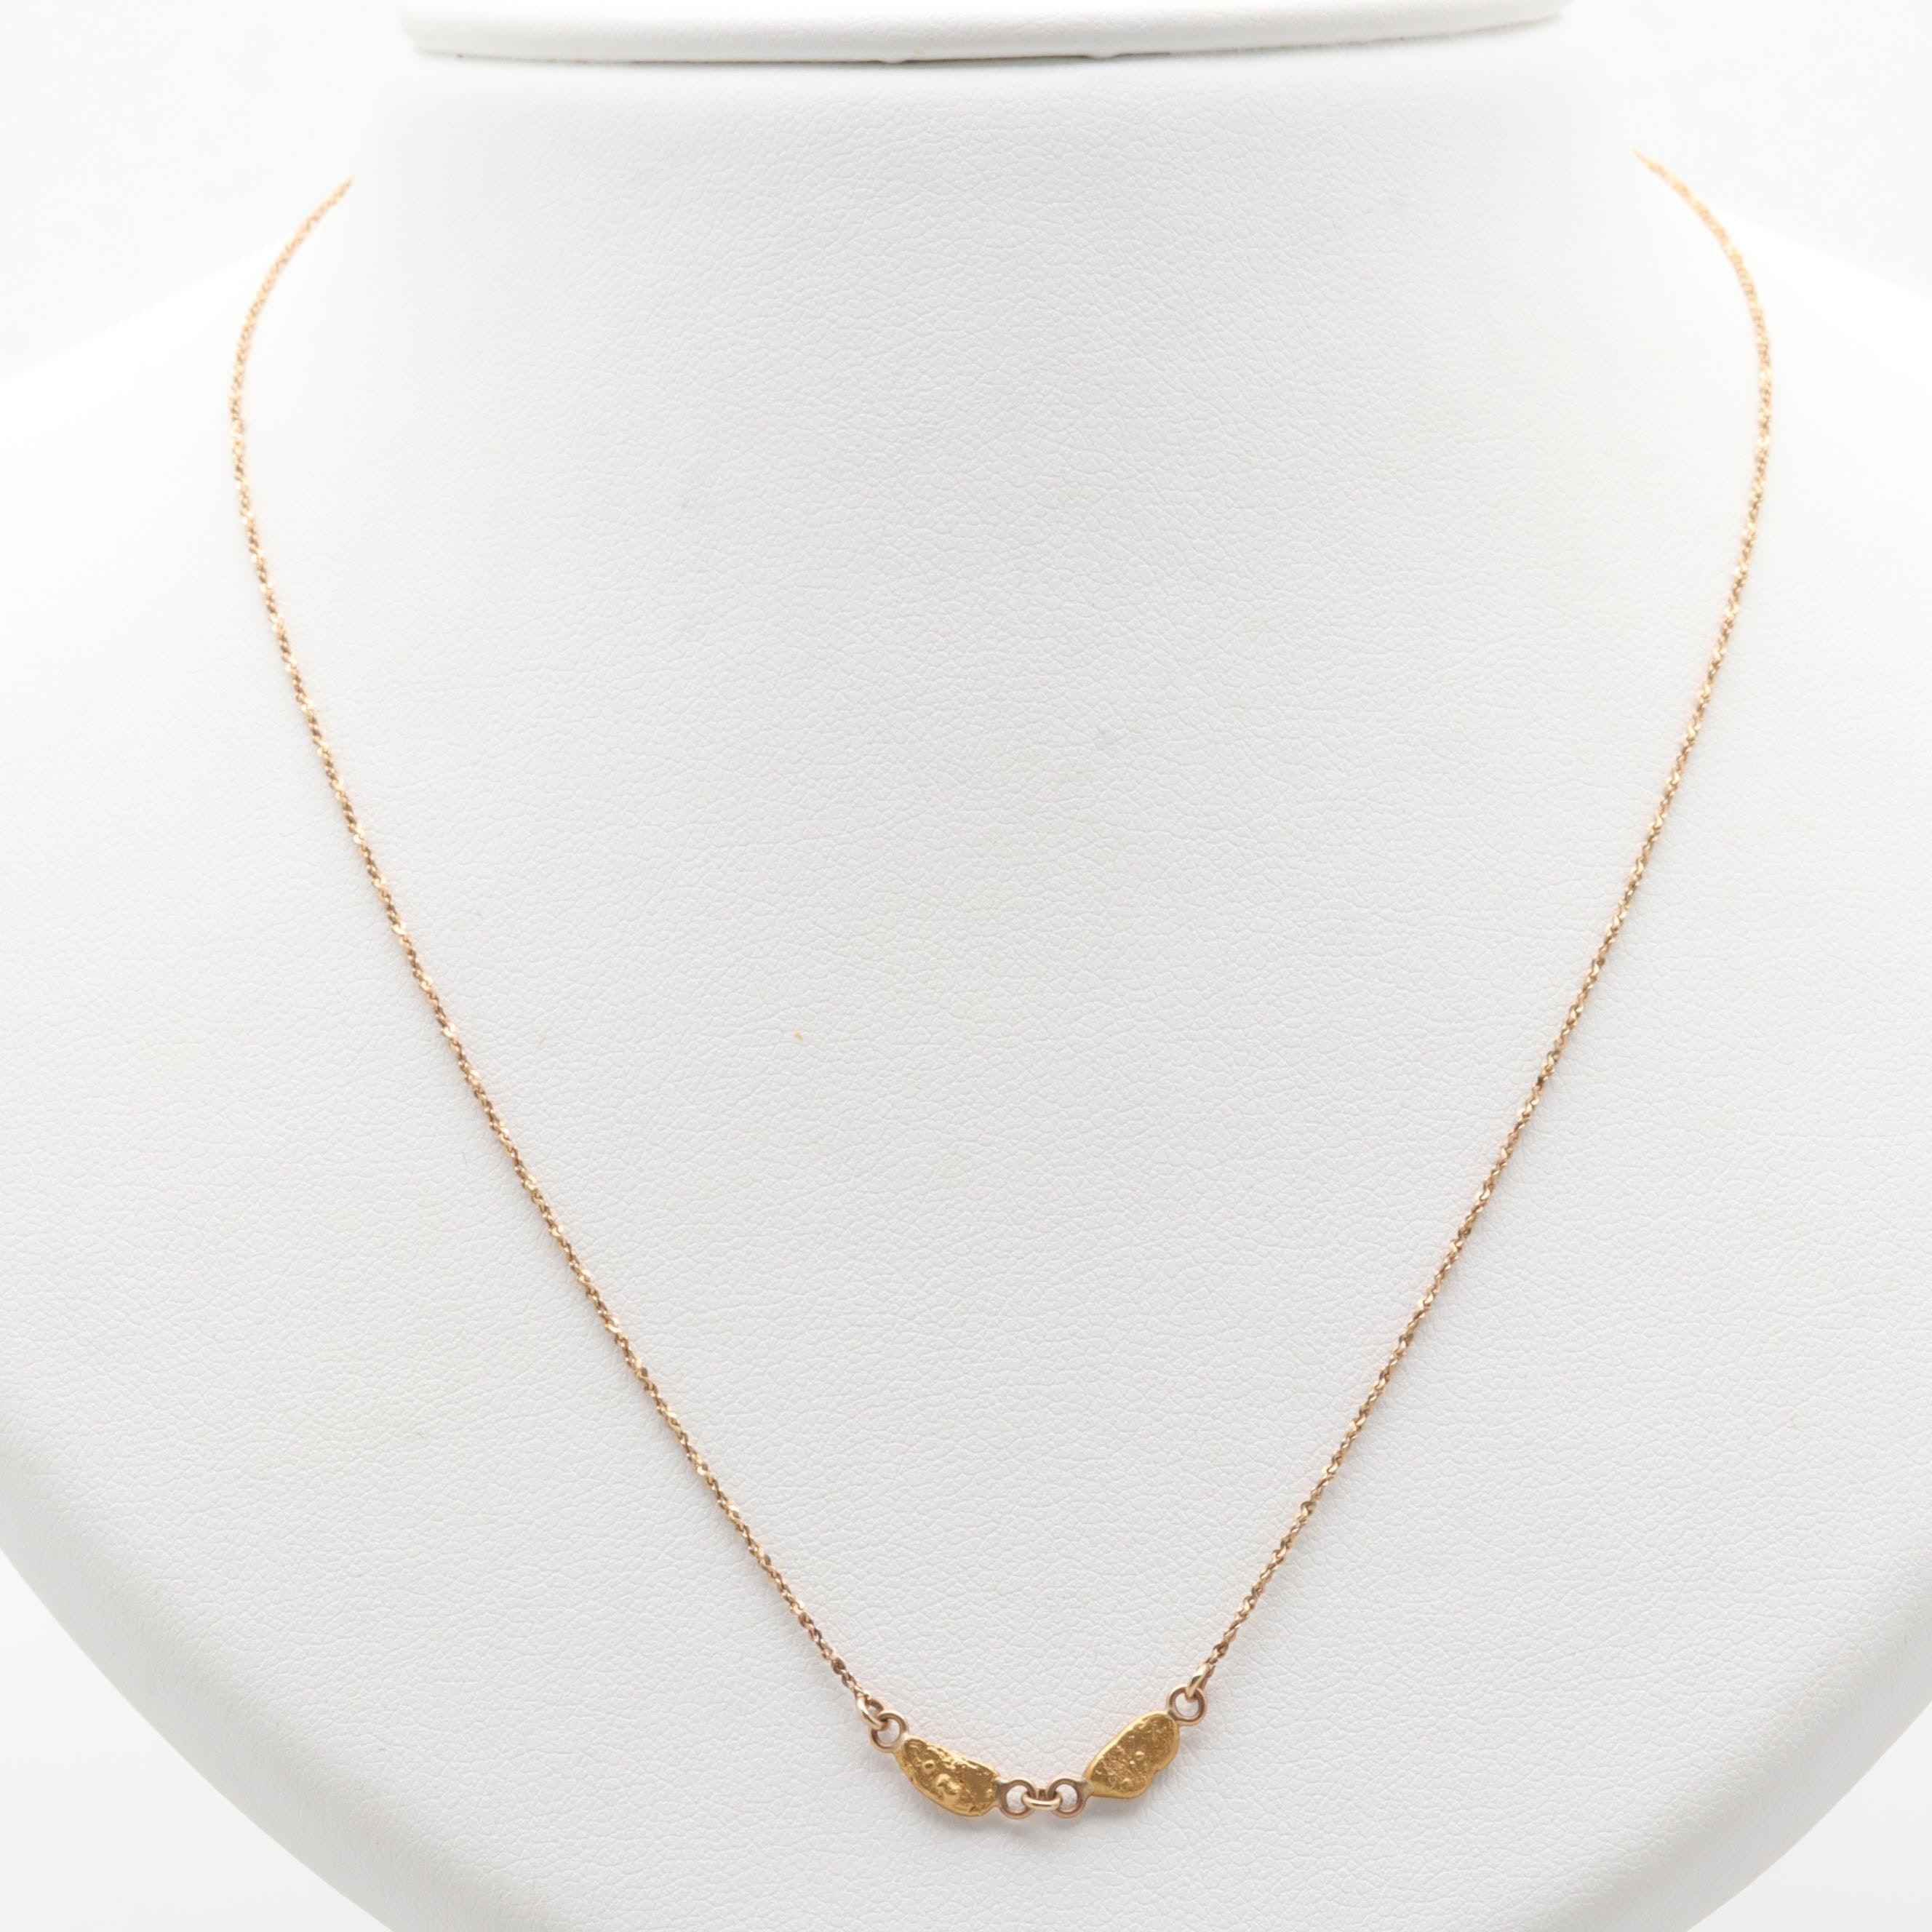 10K Yellow Gold Necklace with 22K Yellow Gold Nuggets